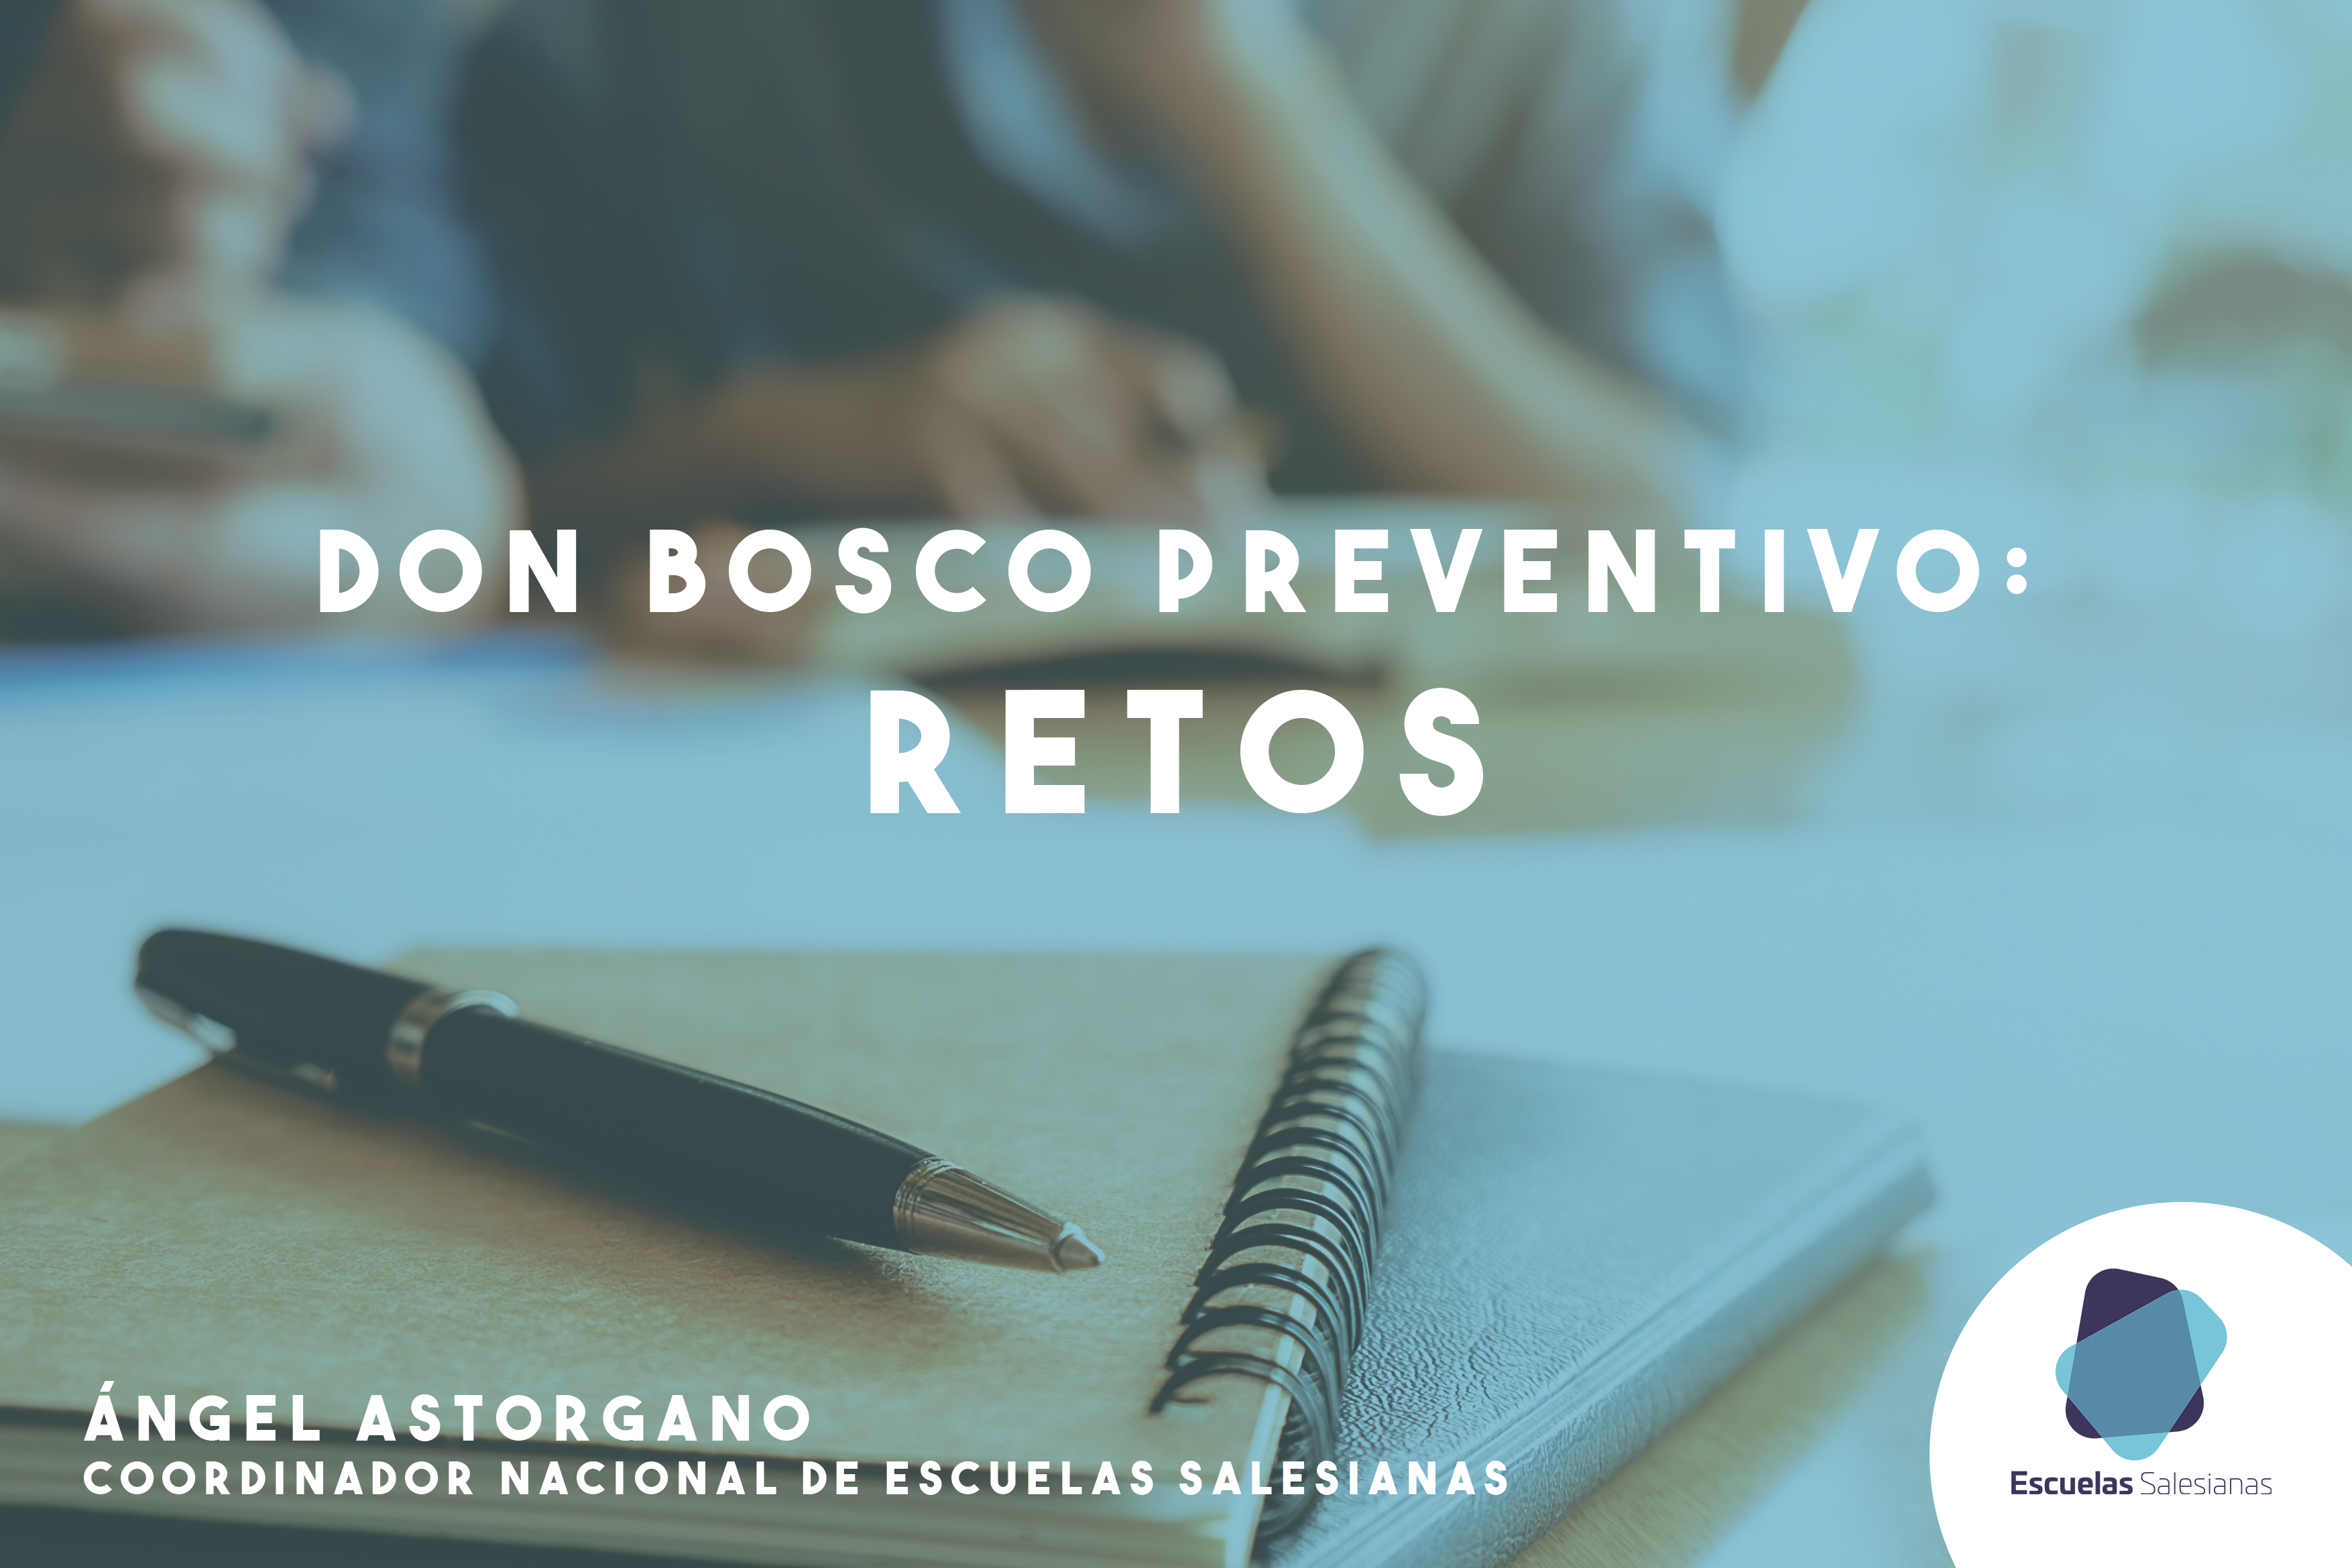 Don Bosco preventivo: retos